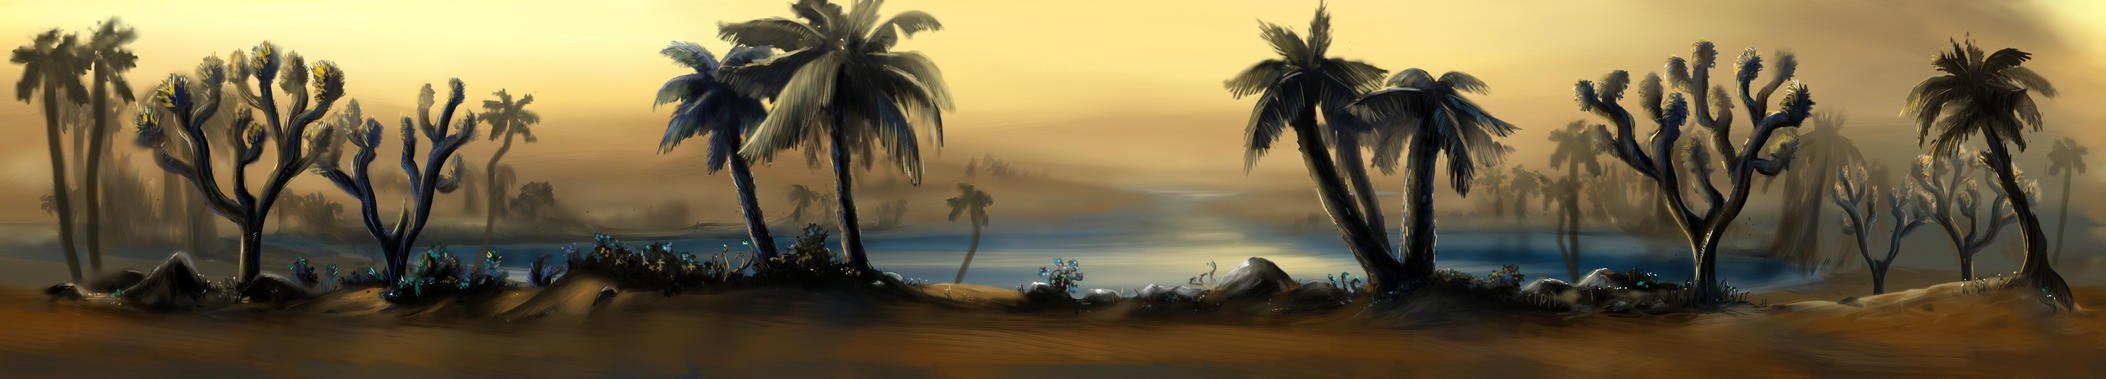 Desert background by Catherine-PL